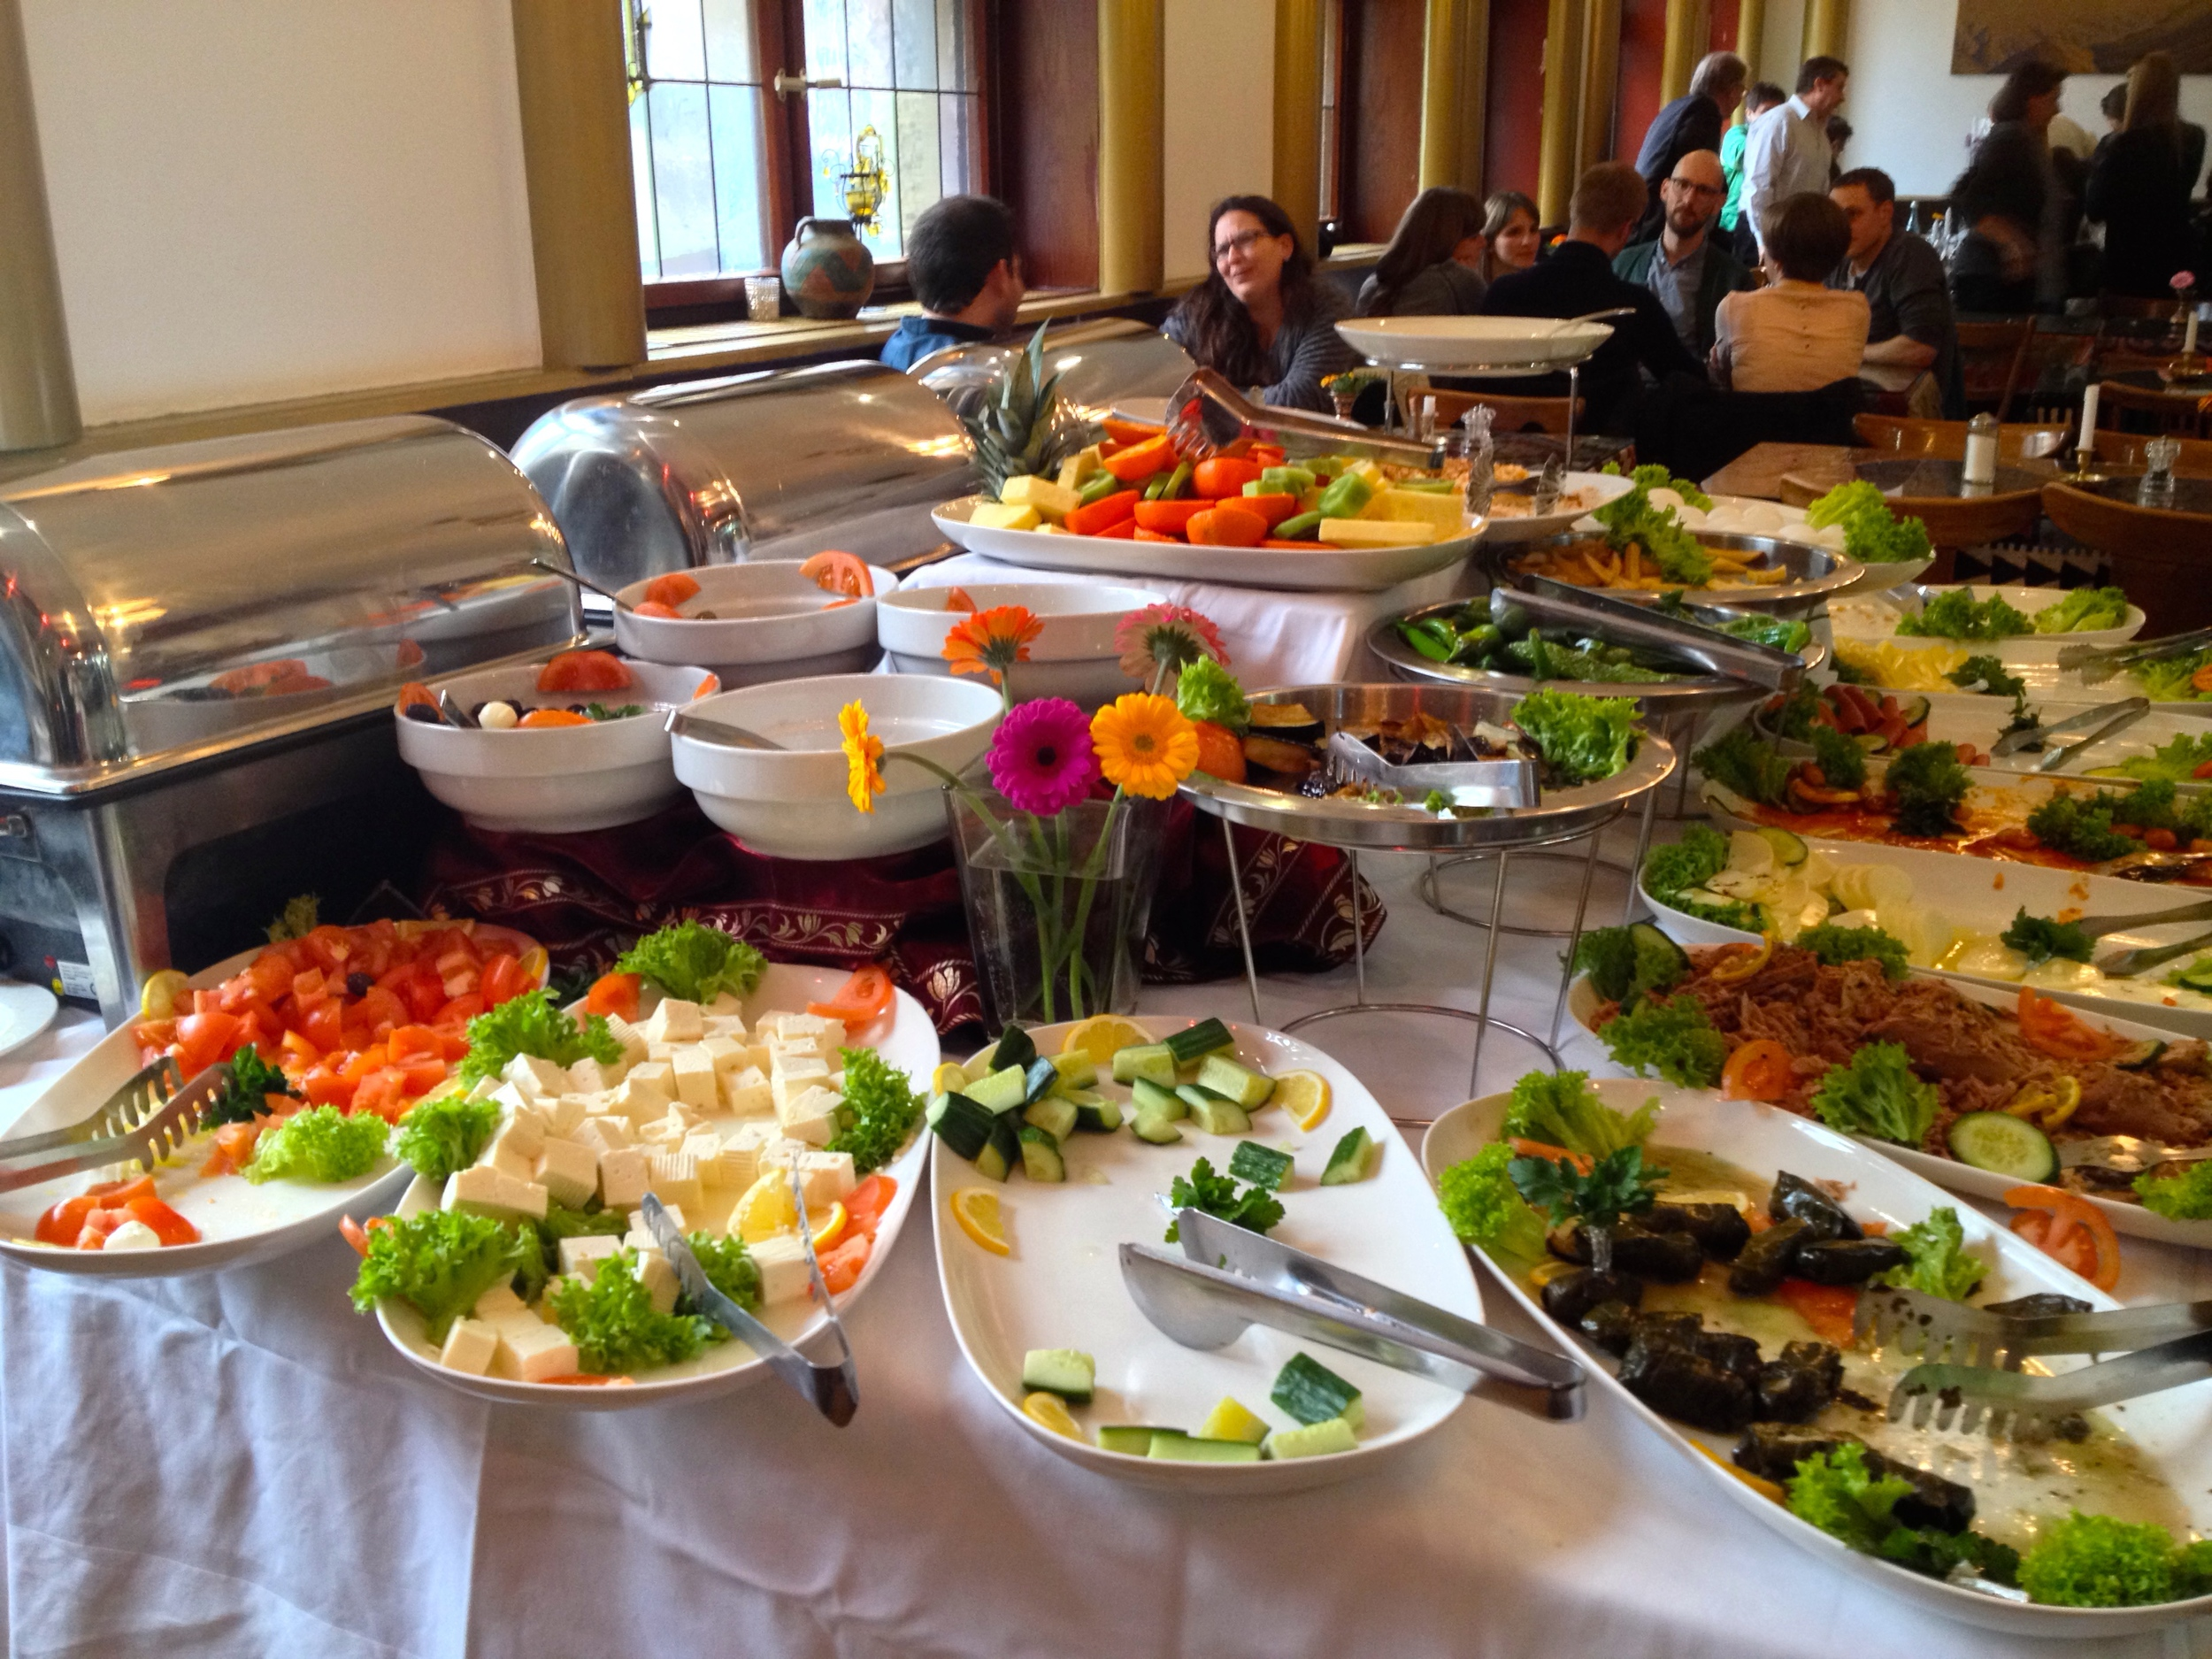 The brunch buffet at Taverna Yol